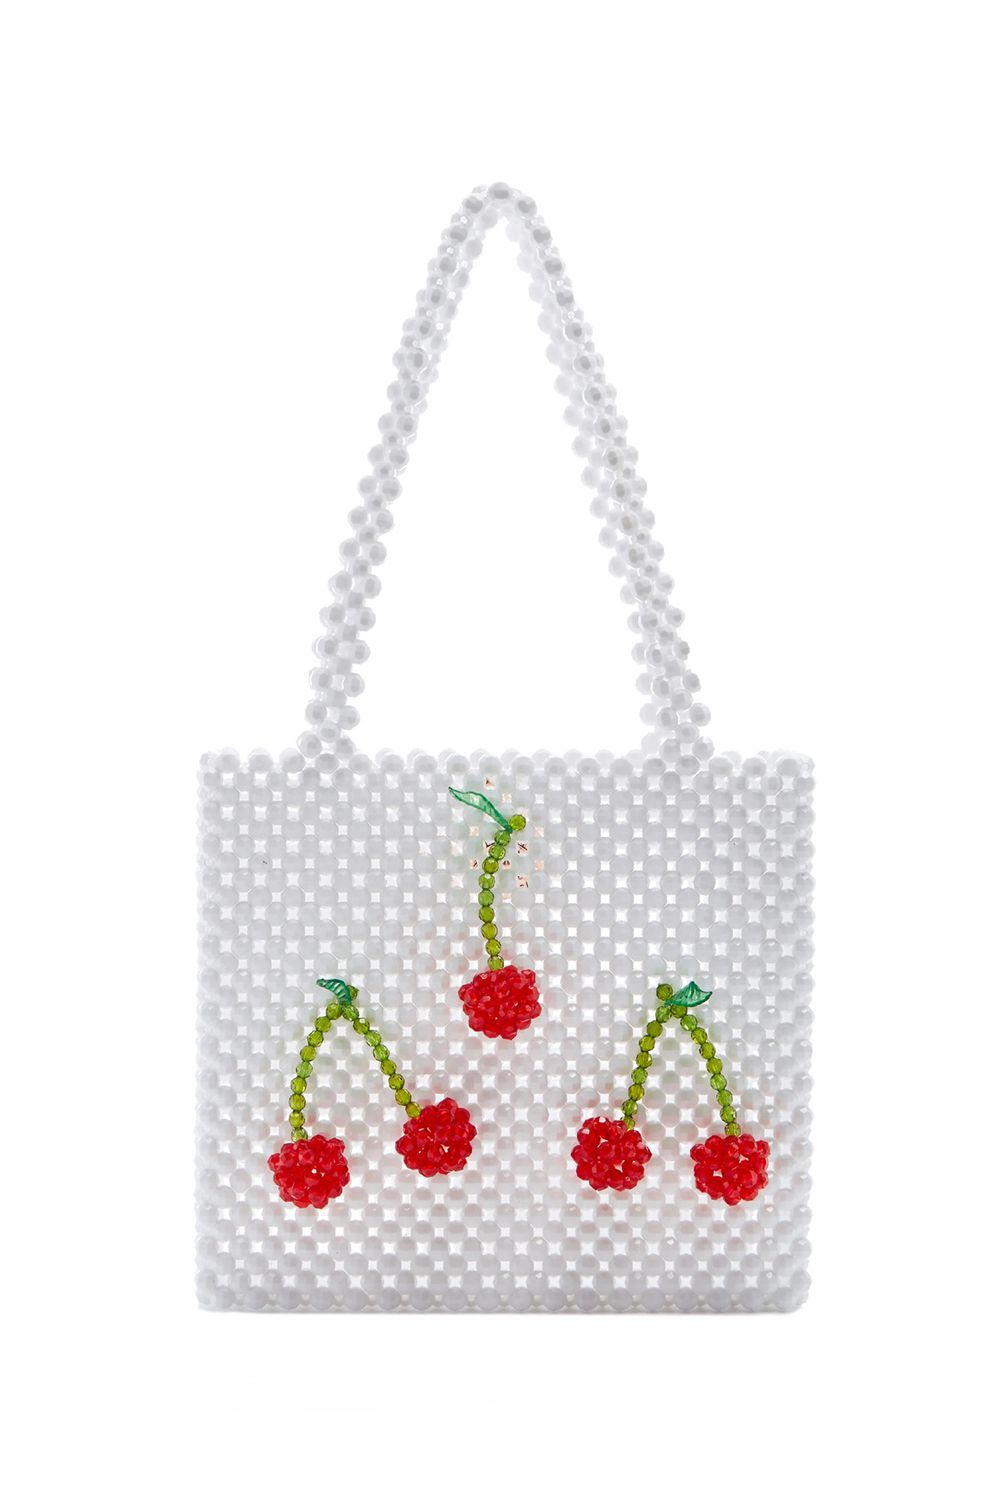 dbbf31221454 Ma Cherie Beaded Tote Bag